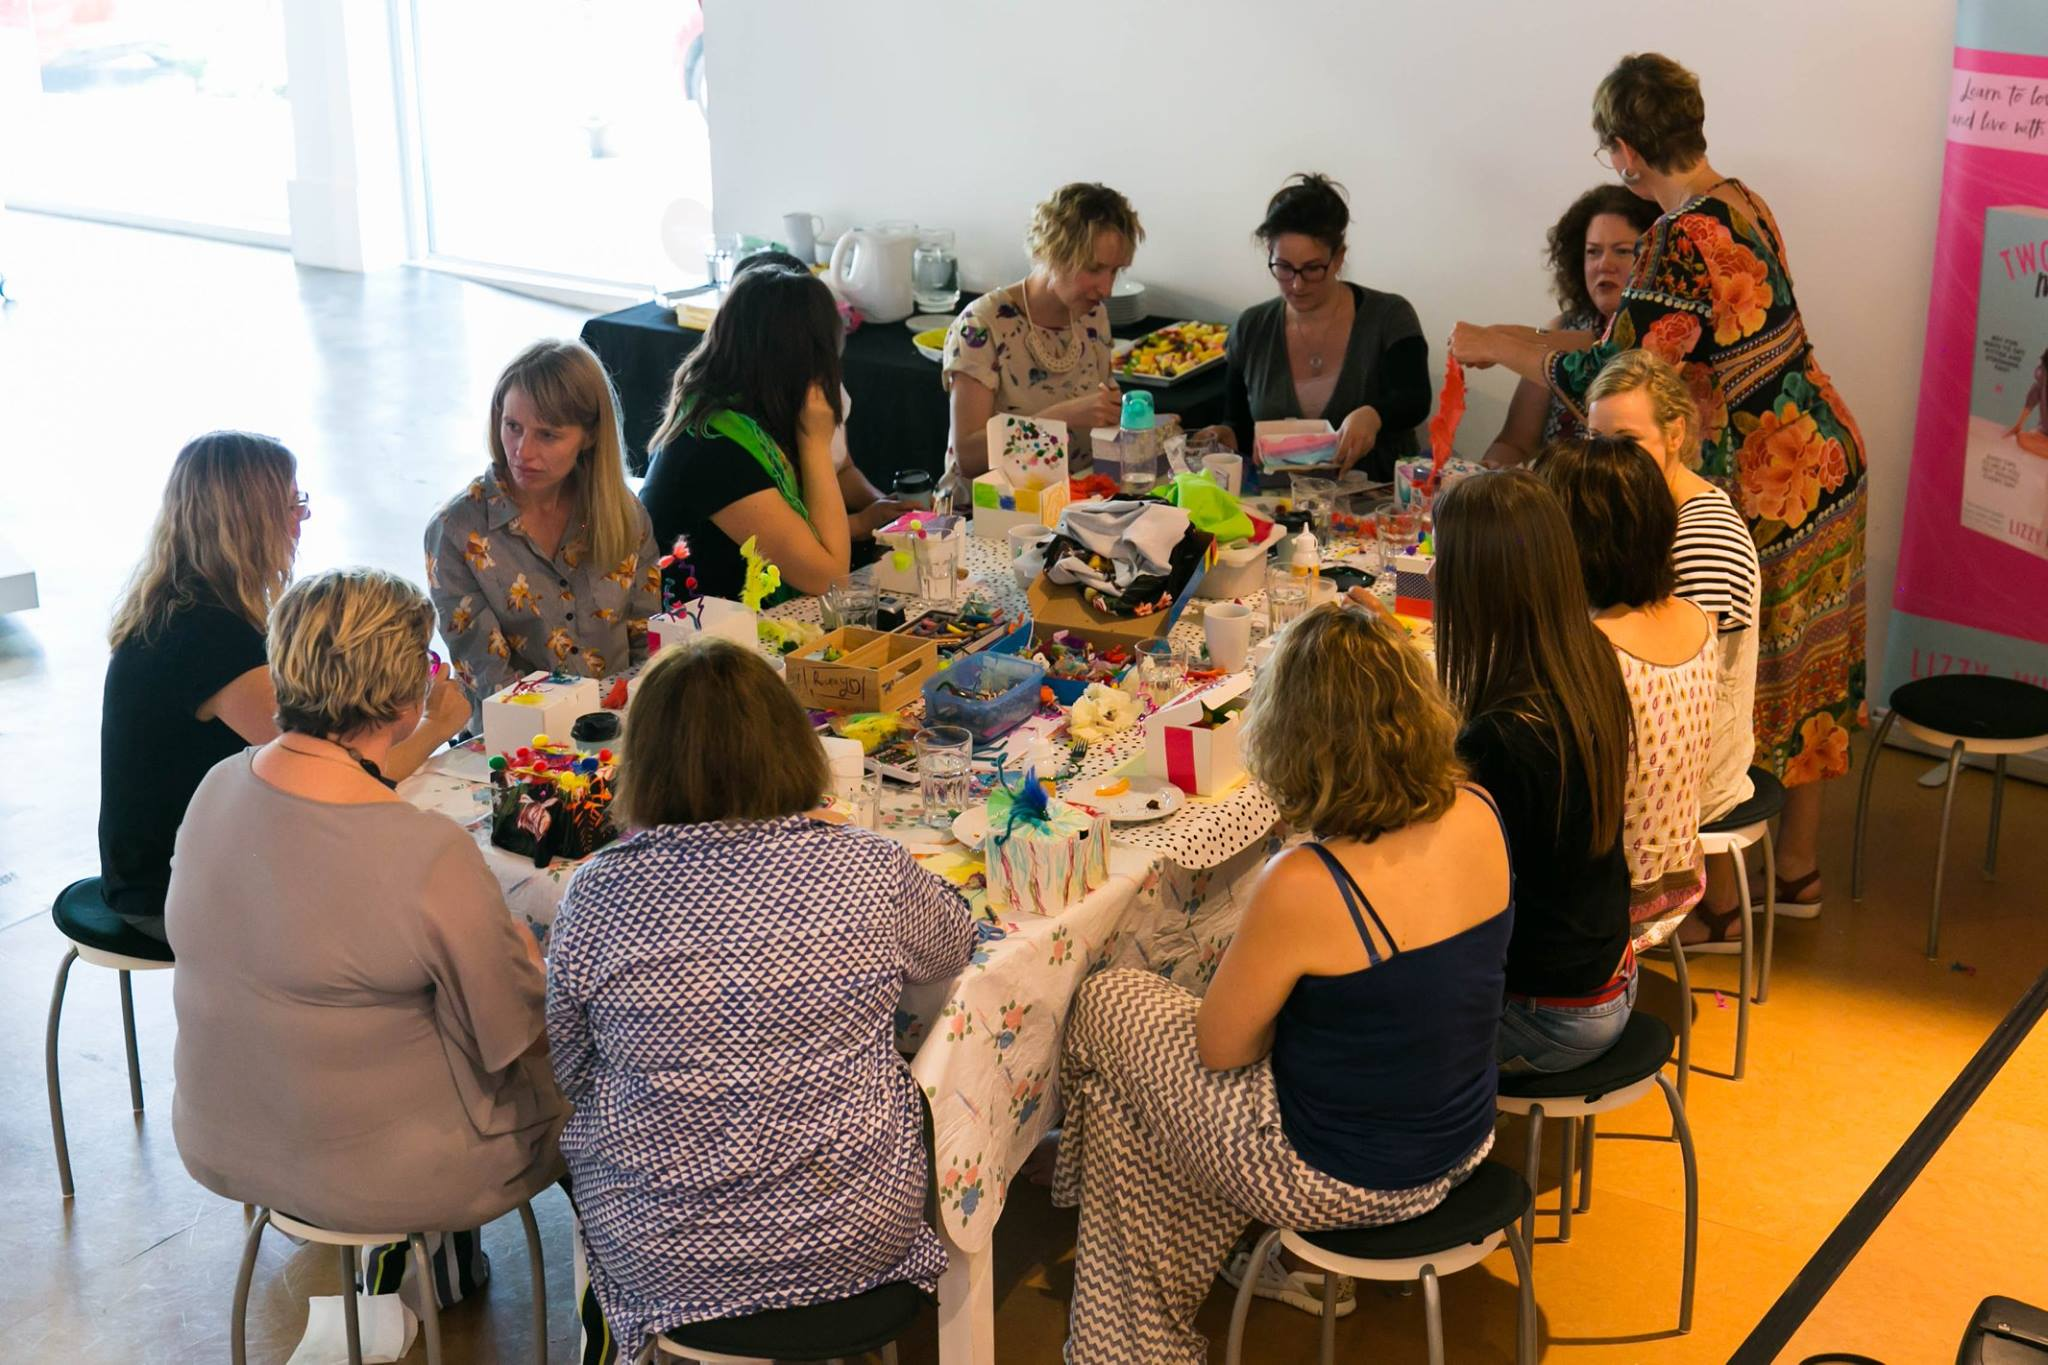 Reflecting on the art activity, at our Creative Mama Workshop in support of PANDA Awareness Week.